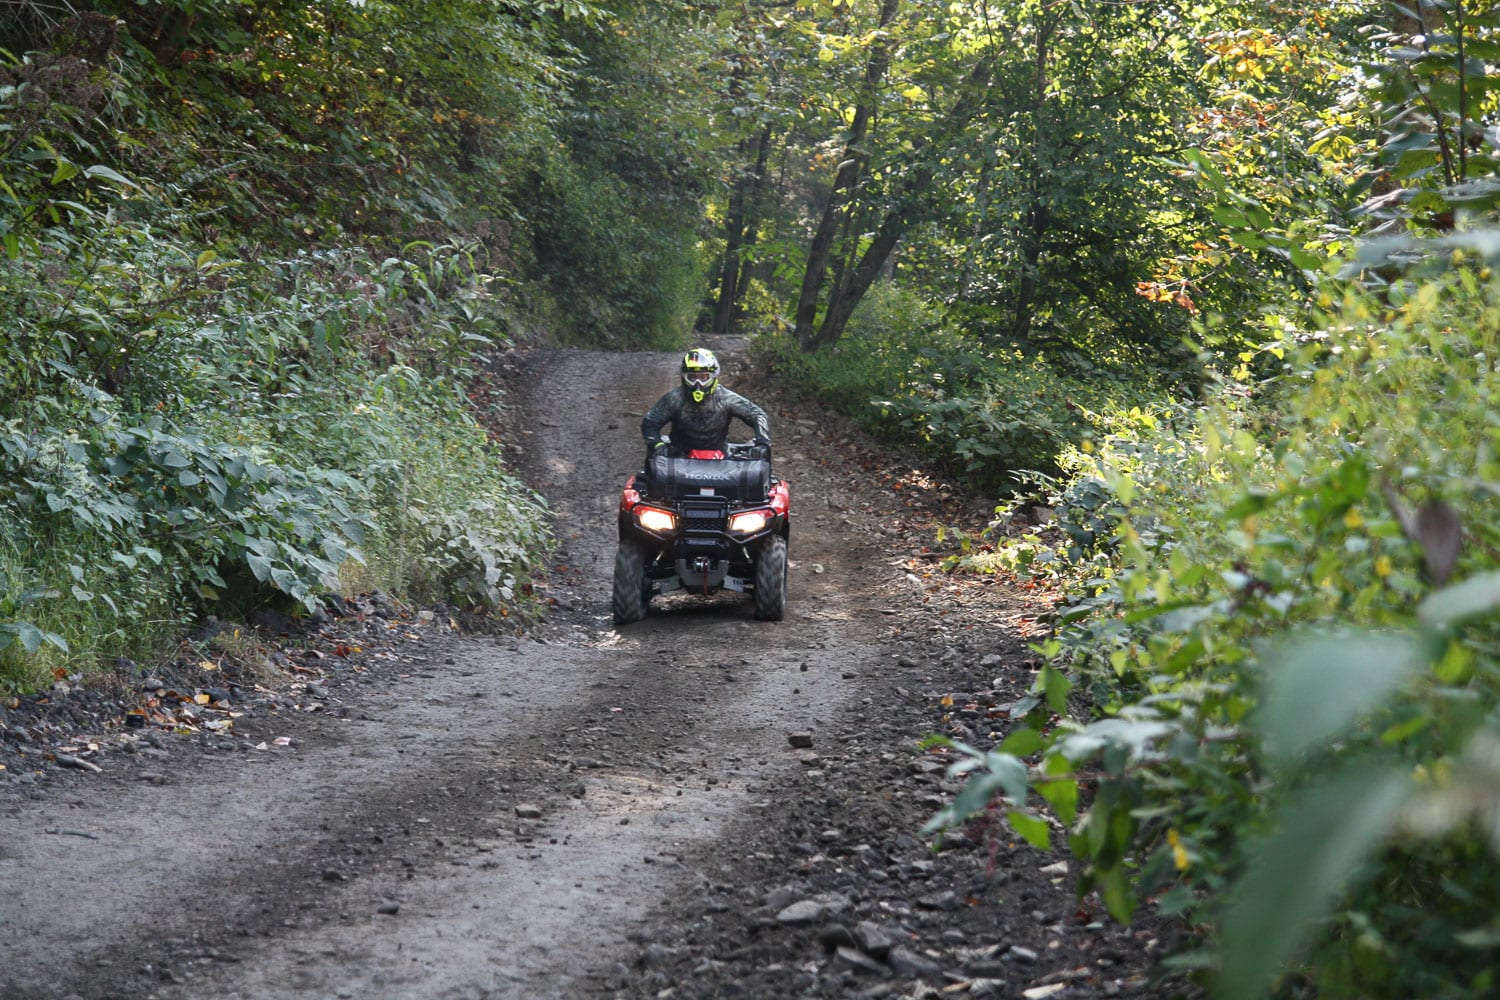 Are you adequately covered to ride on the trails